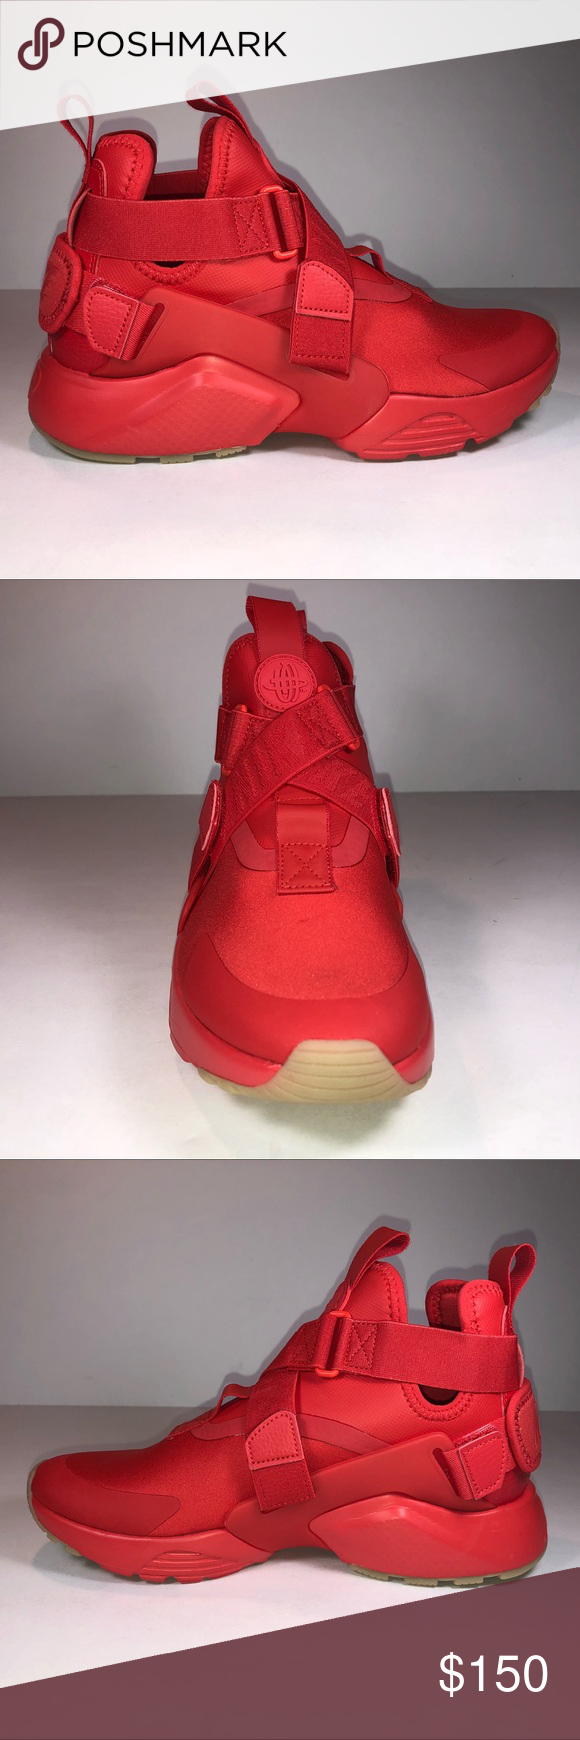 55f64babf2b99 Nike Air Huarache City Speed Red   Tan Bottom Shoe New With Damaged Box  Missing Lid